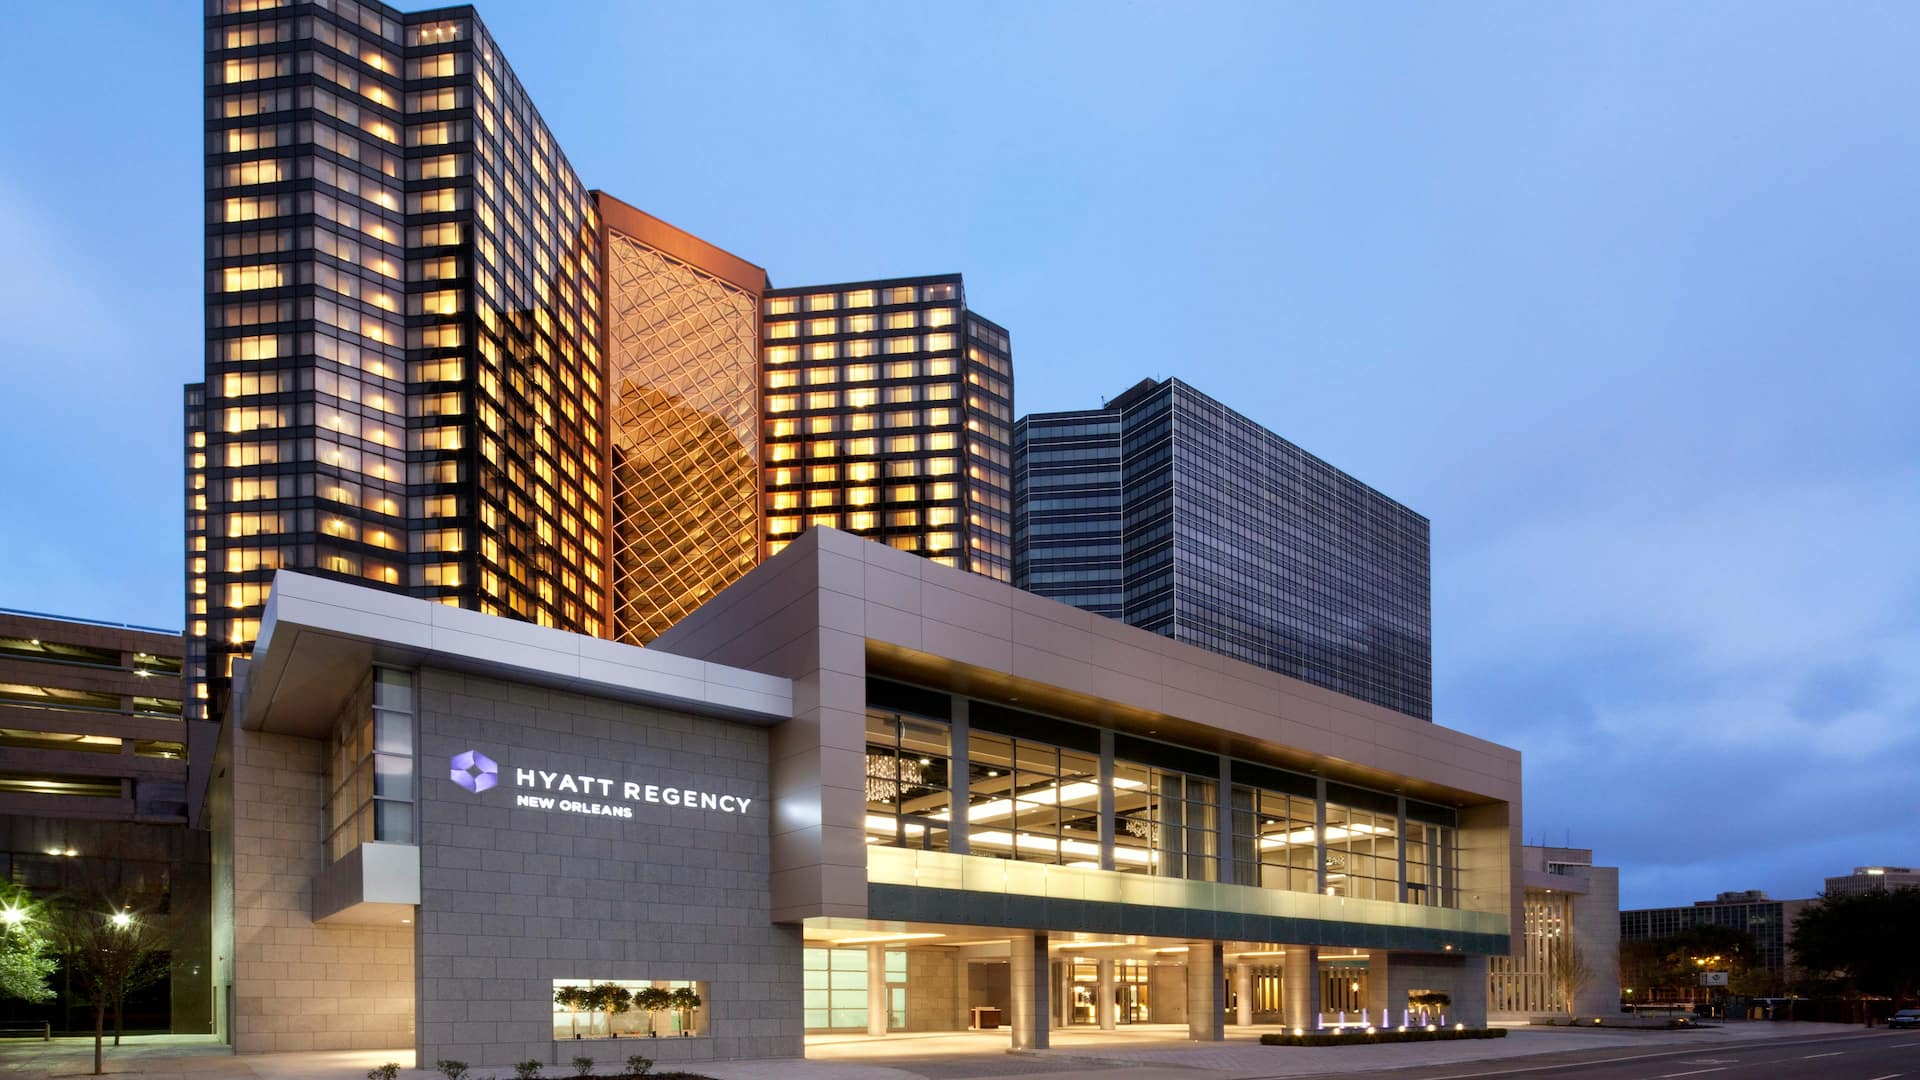 Hyatt Regency New Orleans Exterior